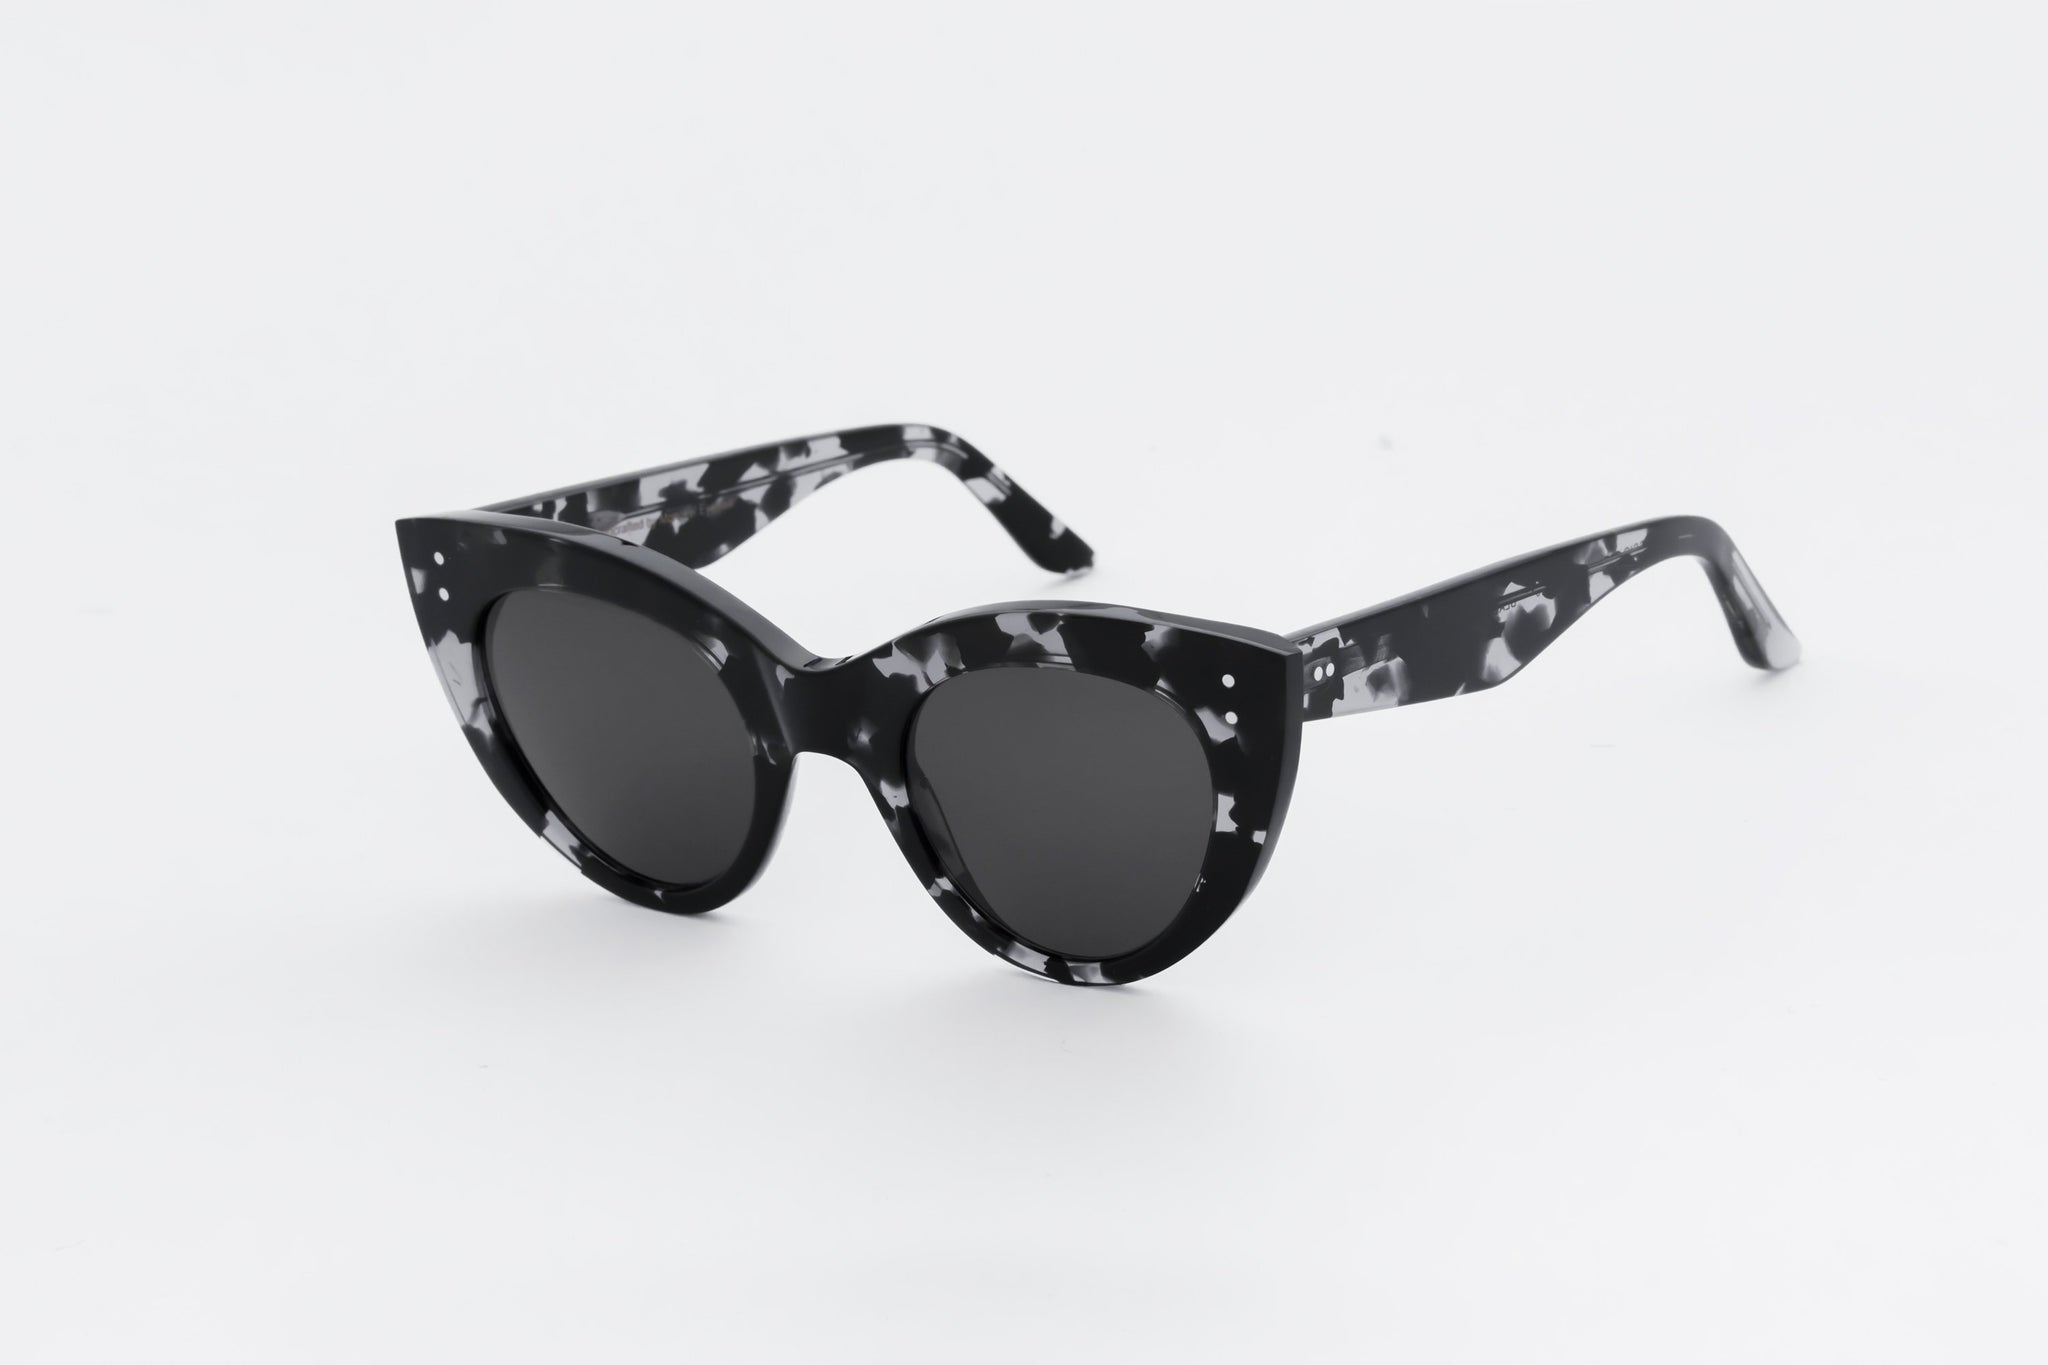 monokel eyewear sunglasses june black/grey-havana / grey solid lens